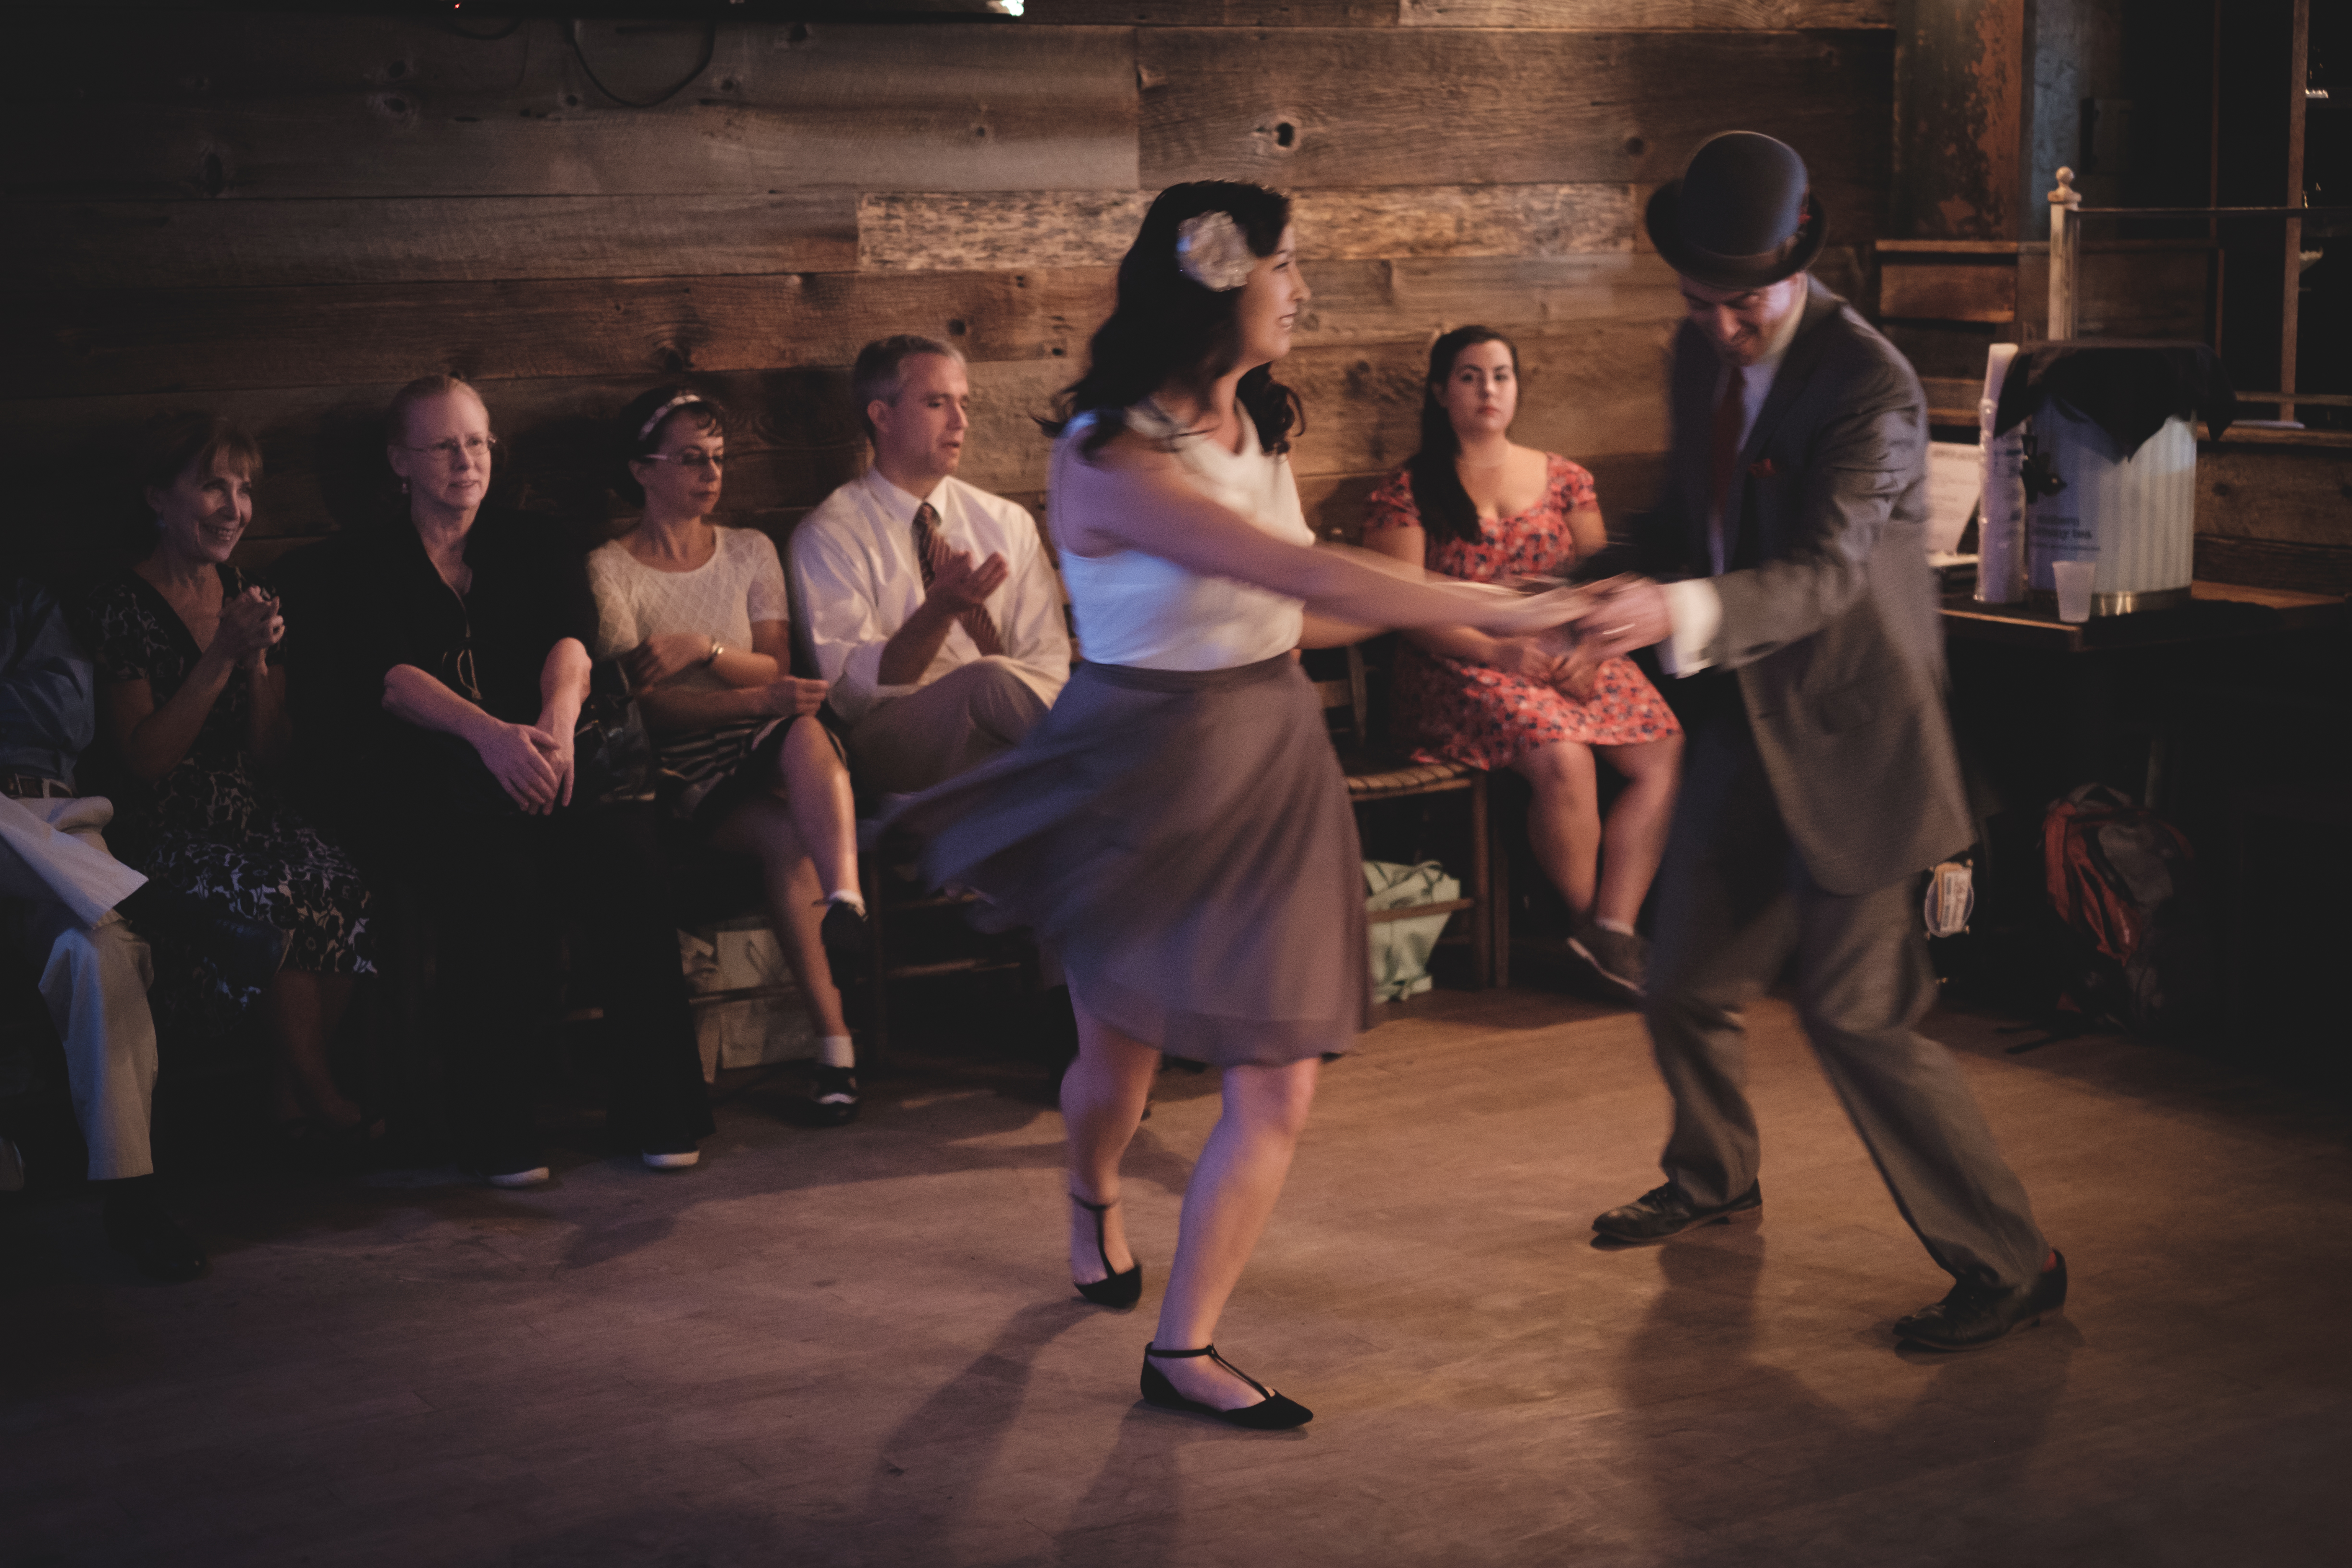 Swing dancing at Prohibition